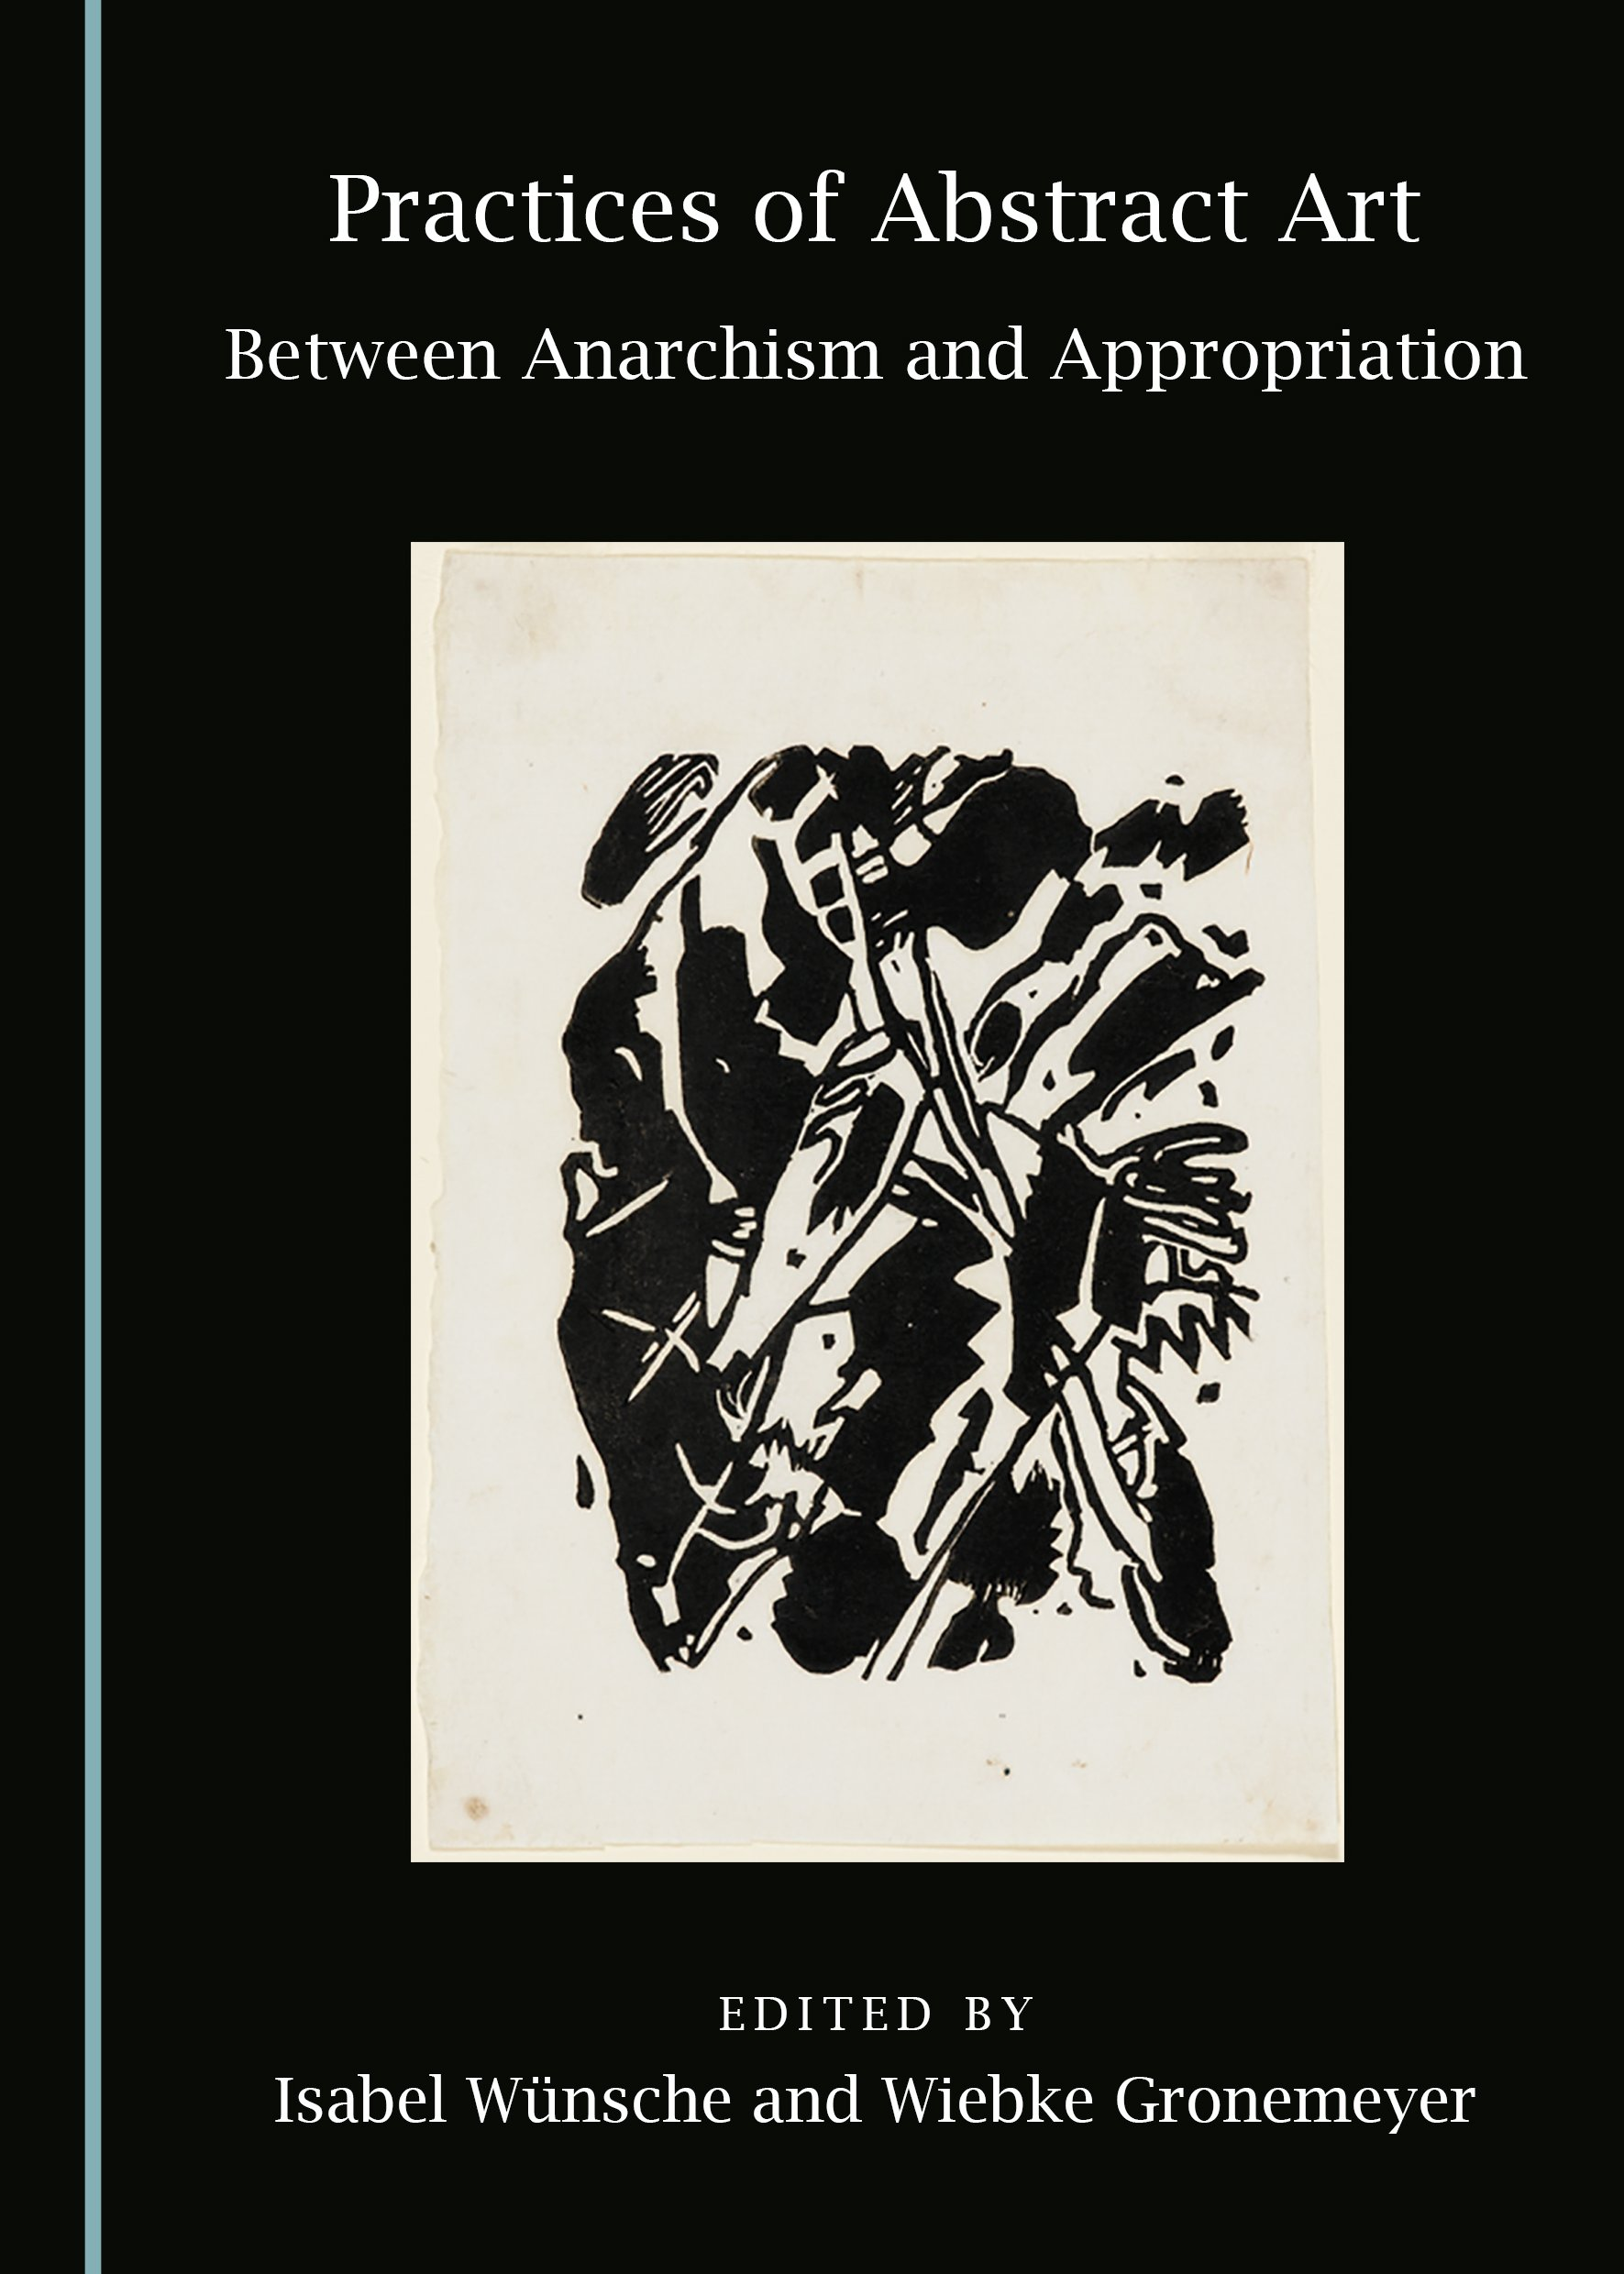 Practices of Abstract Art: Between Anarchism and Appropriation